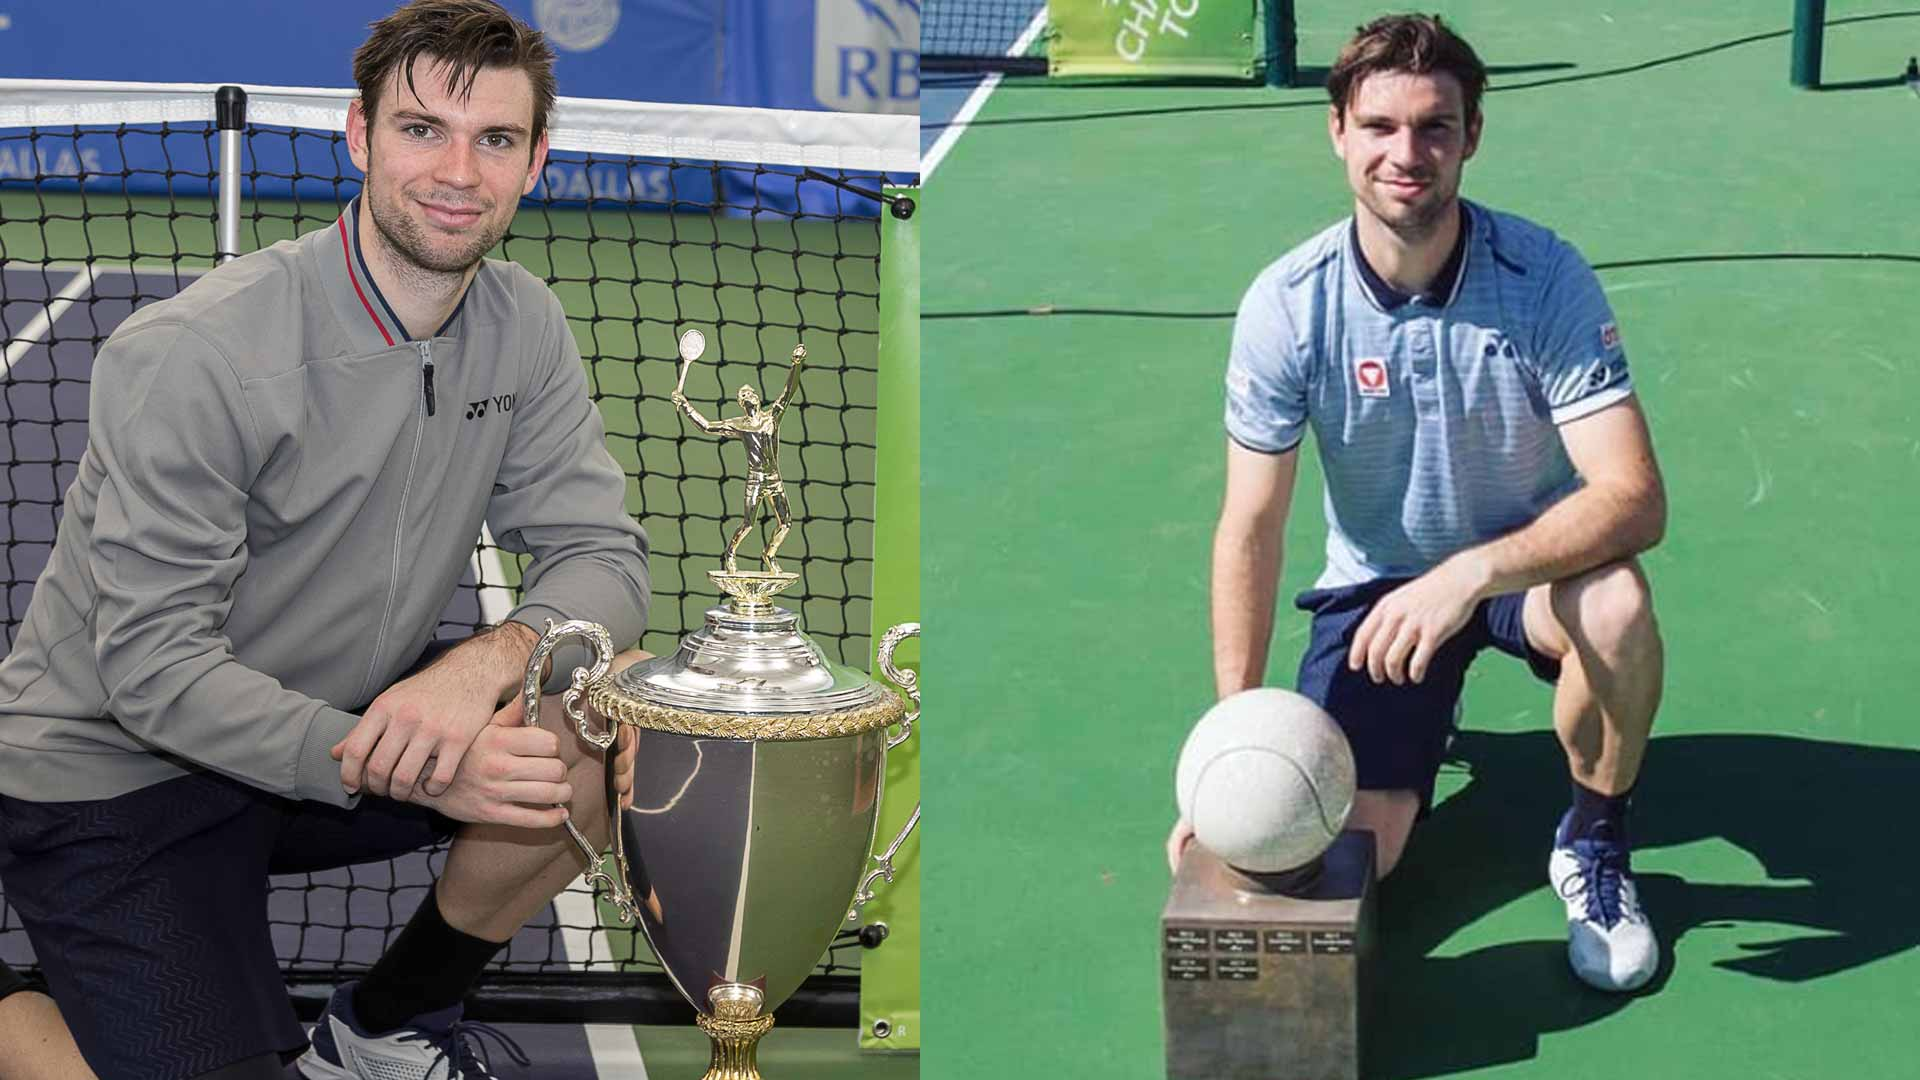 Jurij Rodionov adds ATP Challenger Tour titles from Dallas and Morelos to his trophy collection.